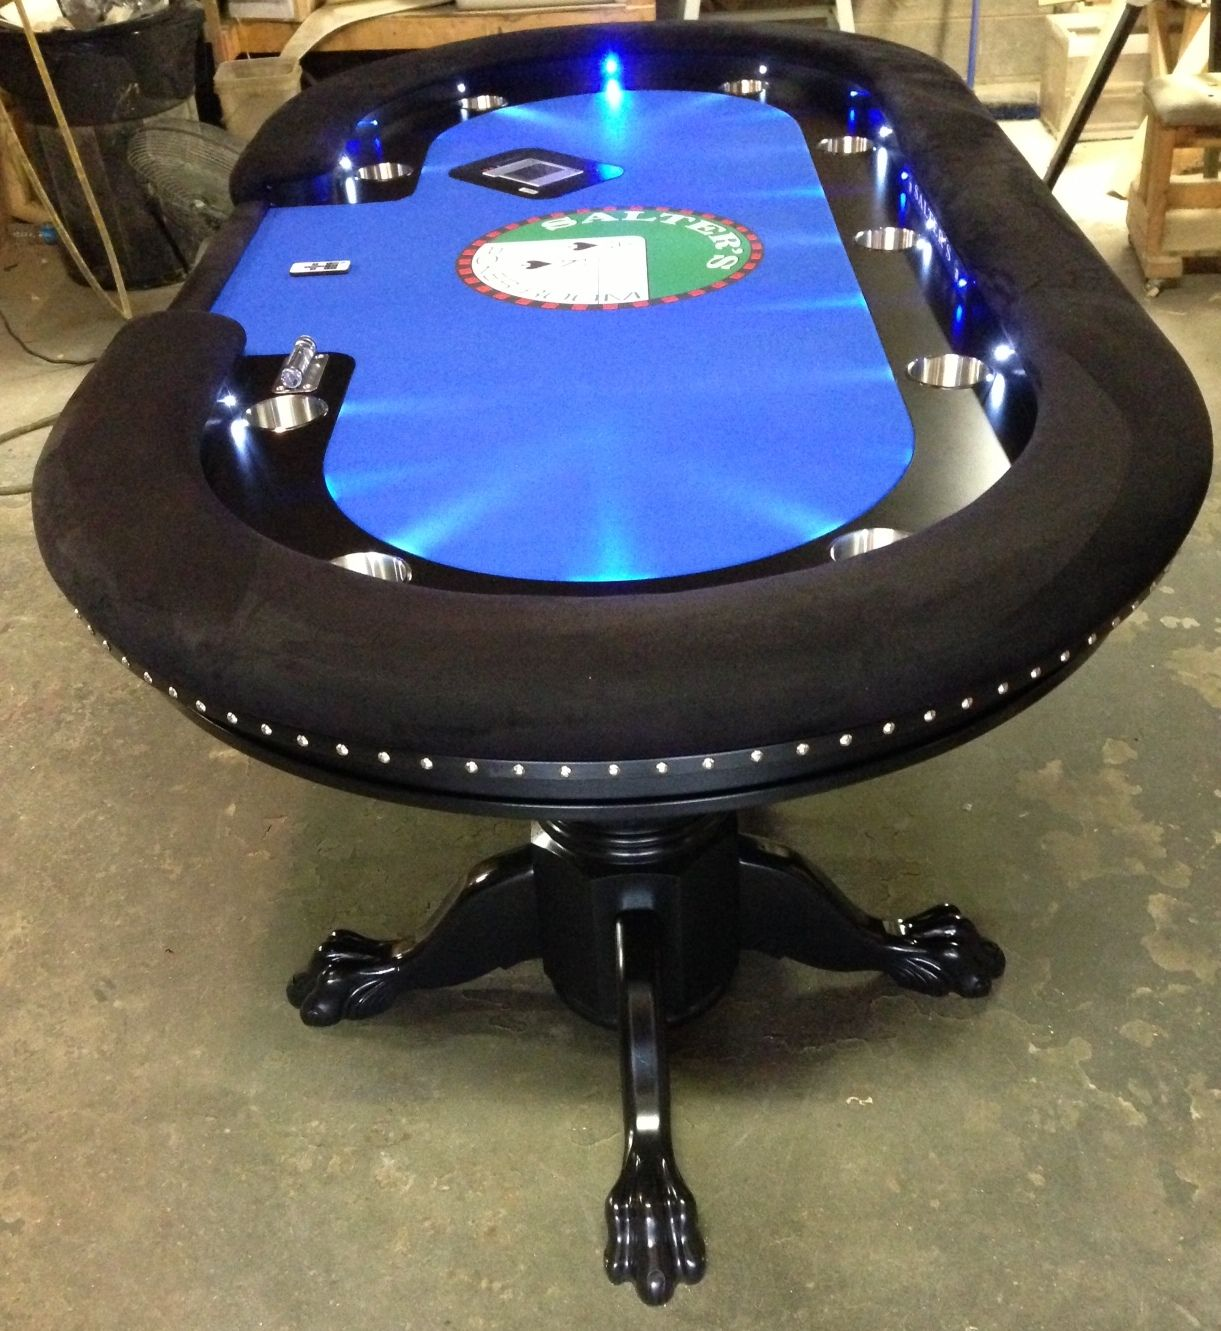 Custom Poker Tables Blackjack Craps Tables Chairs Custom Poker Chips Custom Poker Tables Poker Table Poker